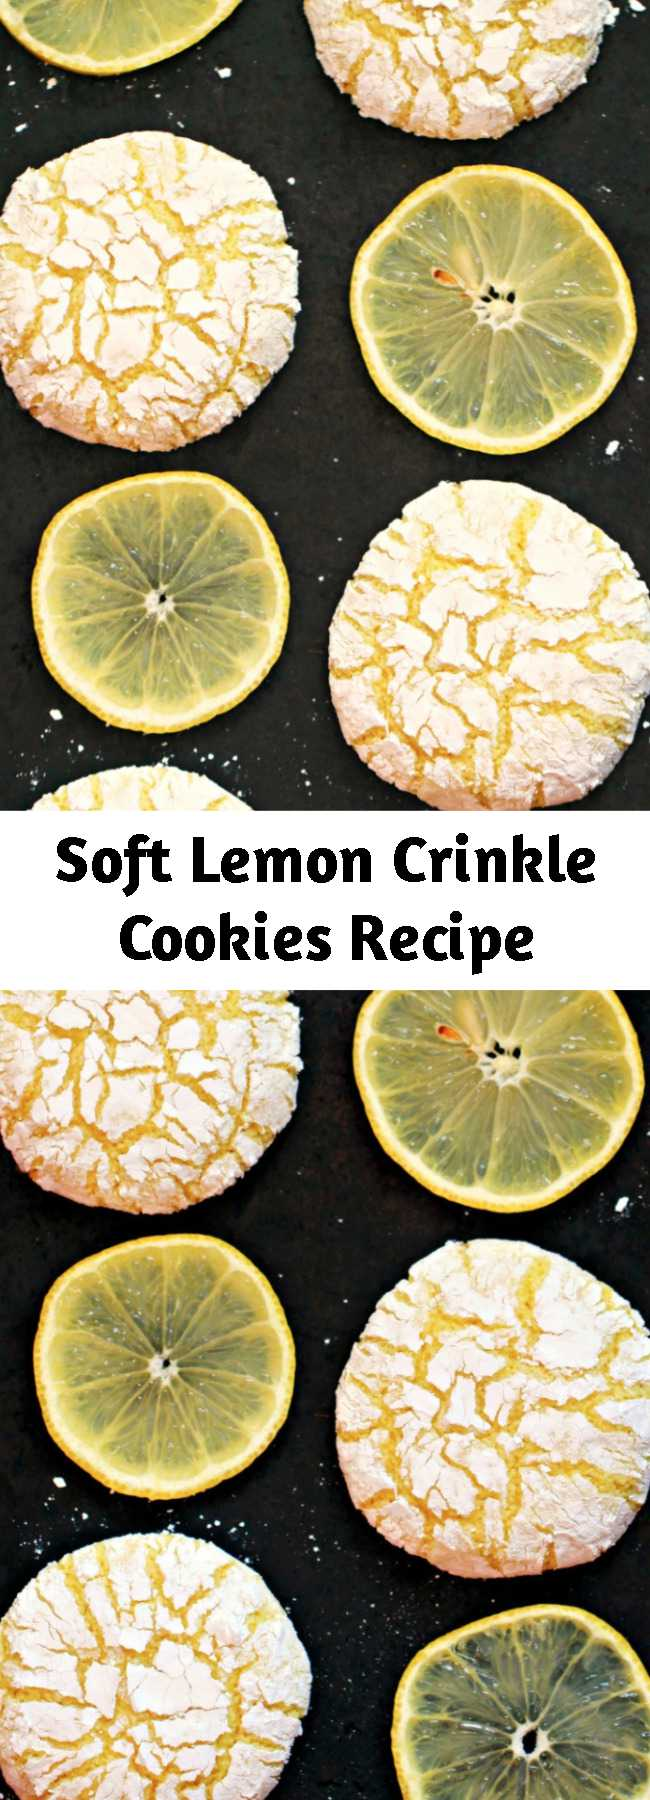 Soft Lemon Crinkle Cookies Recipe - These melt-in-your-mouth Lemon Crinkle Cookies are absolutely dreamy. This cookie recipe is one of my favourites, I could have these for dessert everyday and be happy!